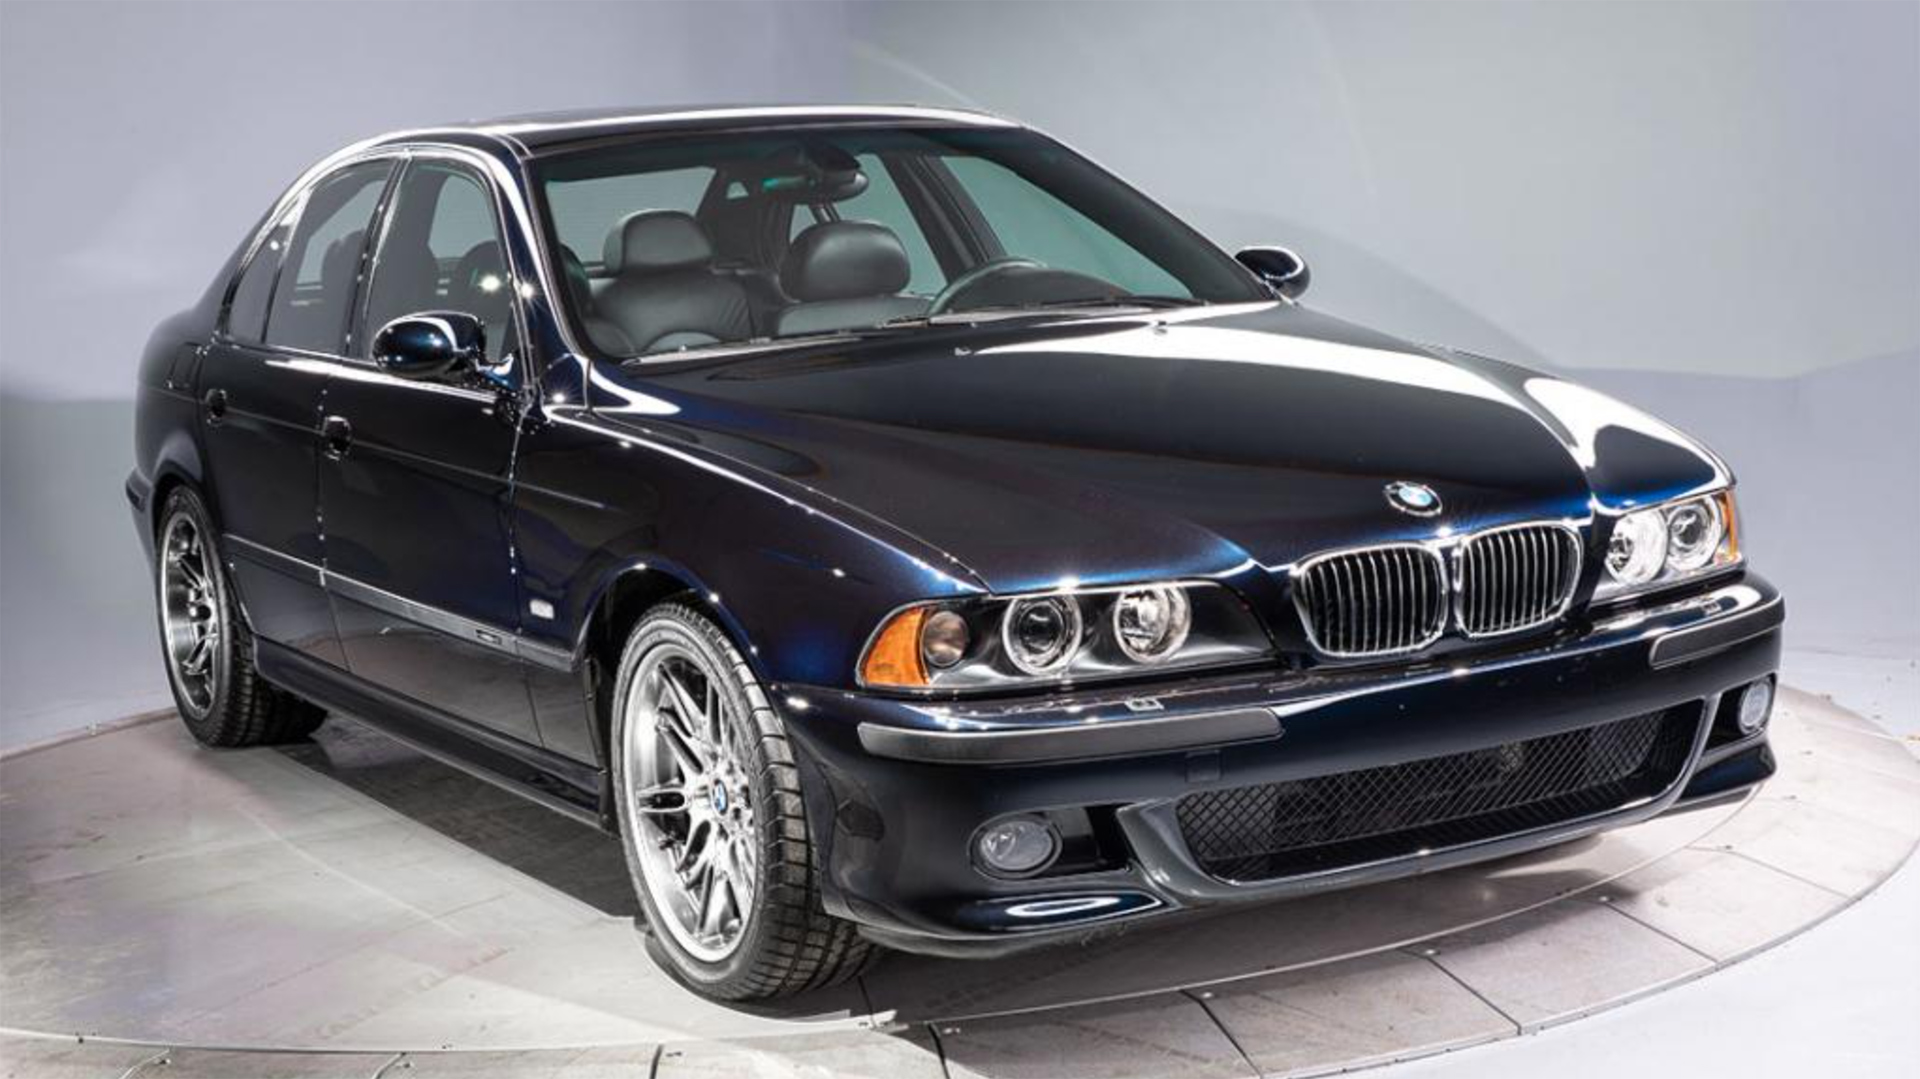 E39 M5s may be even hotter than we thought